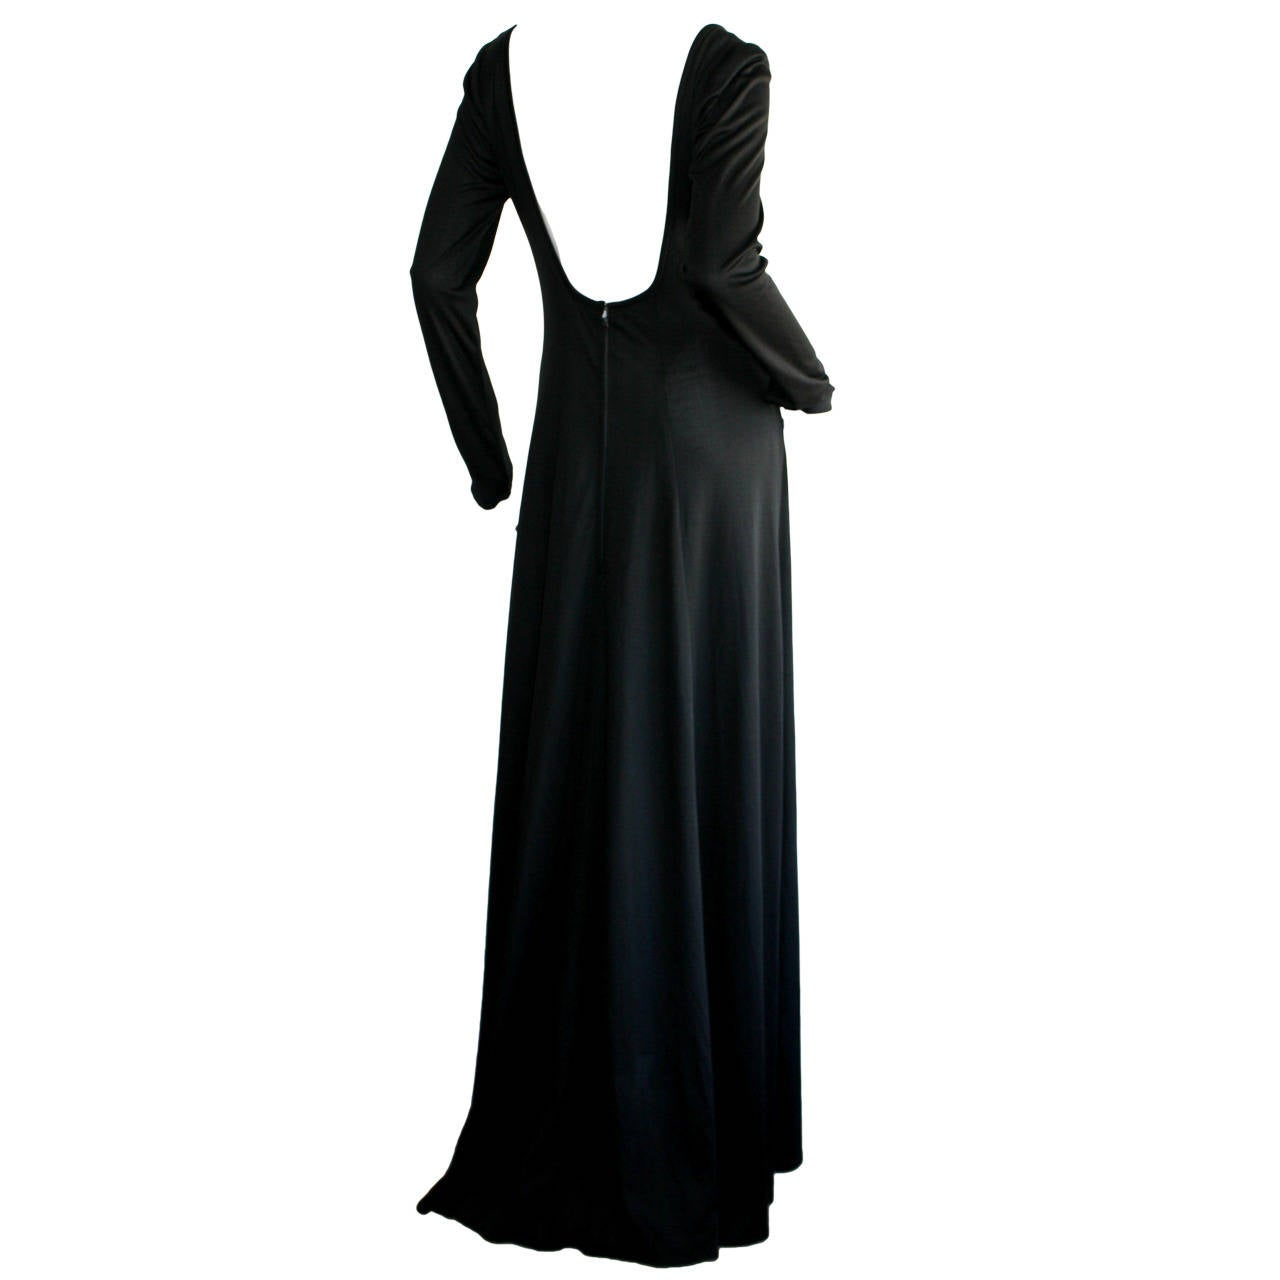 Jean Varon Sexy ' Plunging Back ' 1970s Black Jersey Gown 1